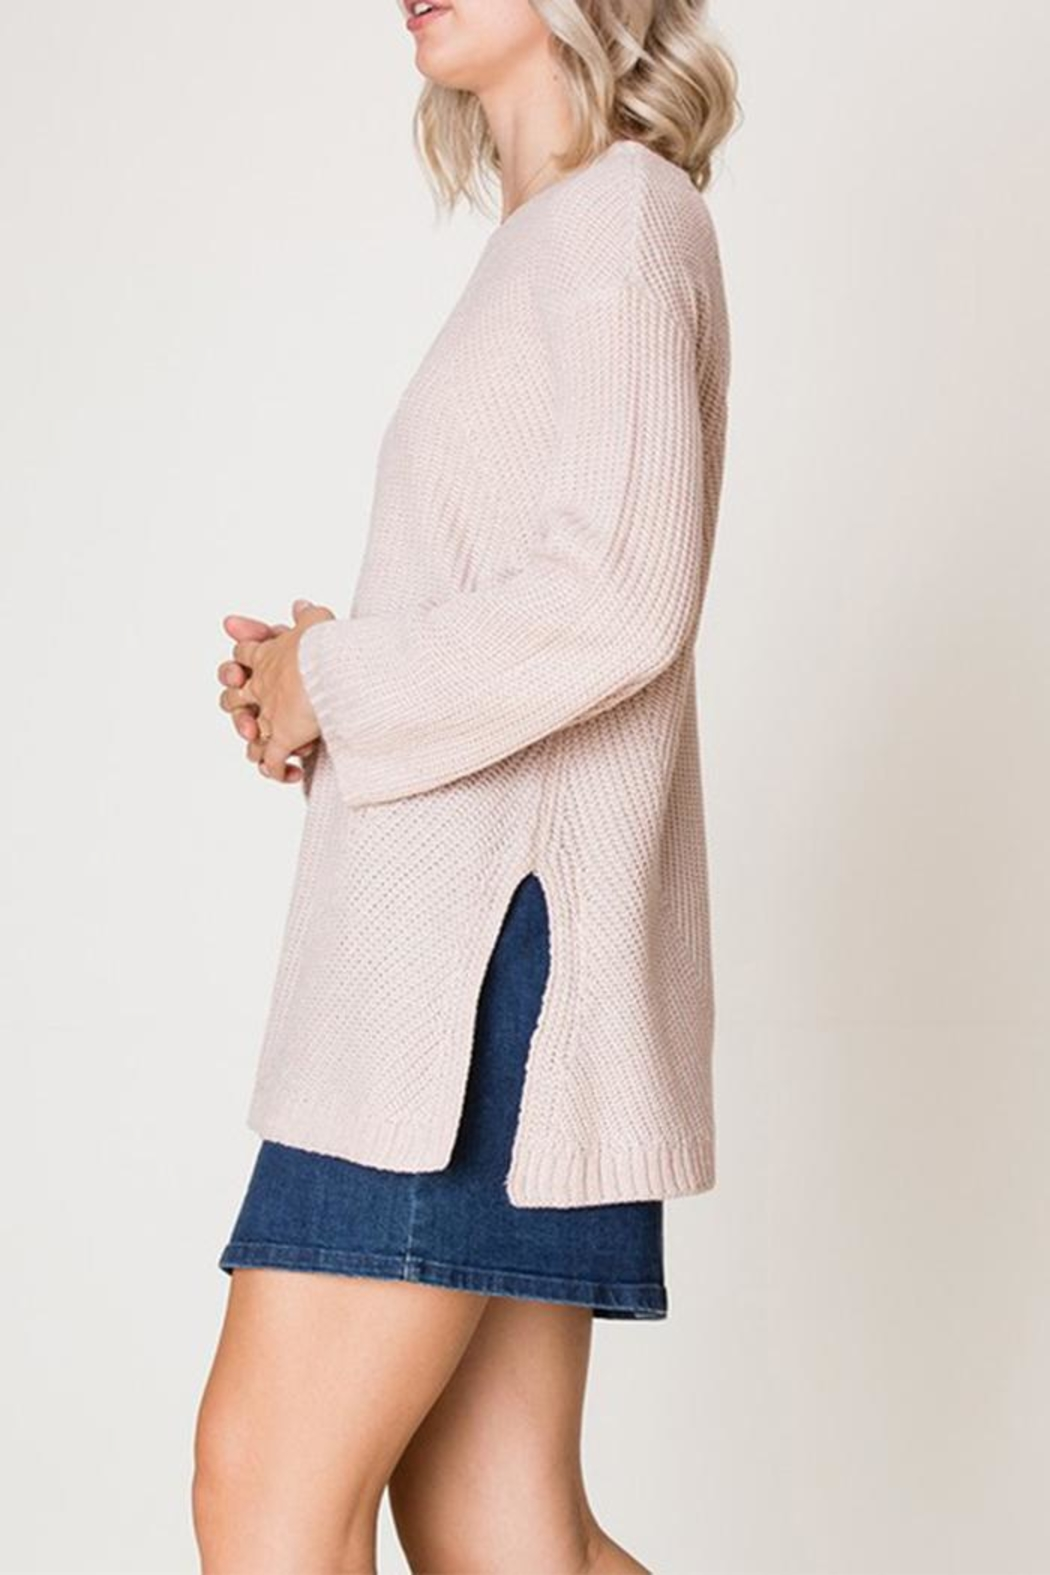 HYFVE Blush Sweater - Front Full Image